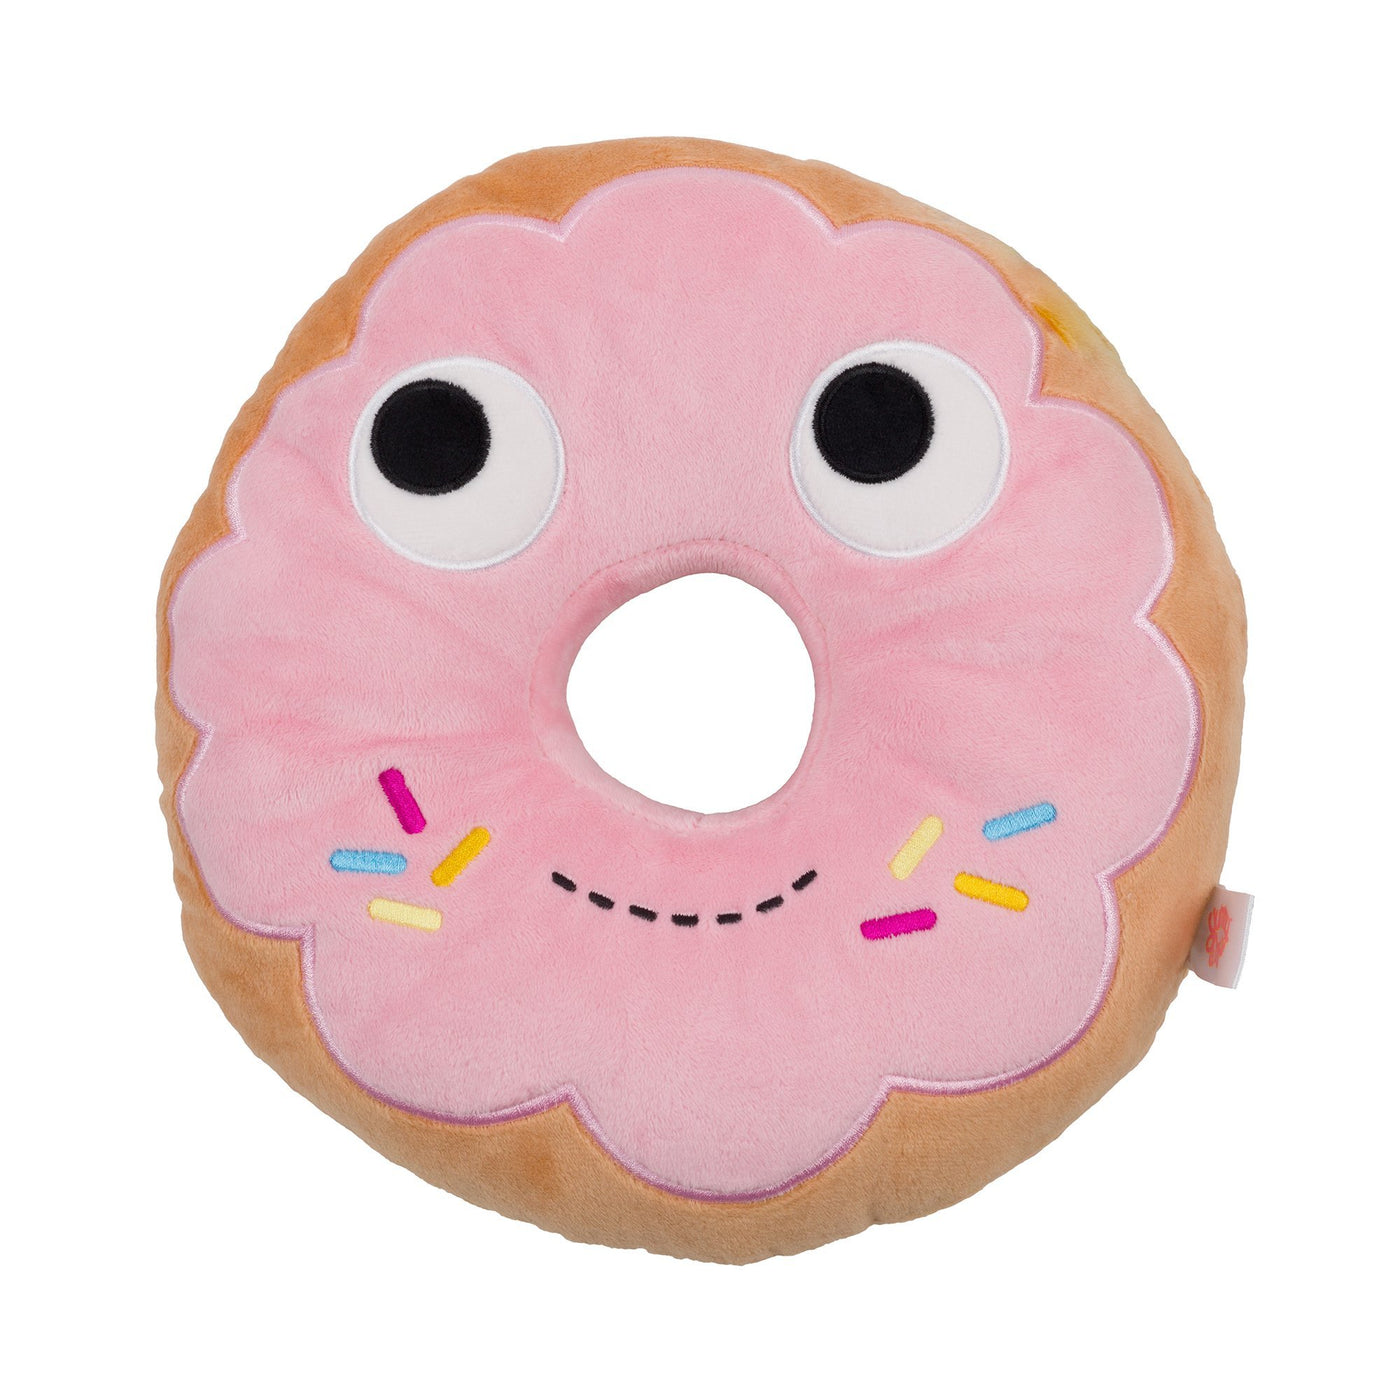 Donut Plush Kidrobot Yummy World